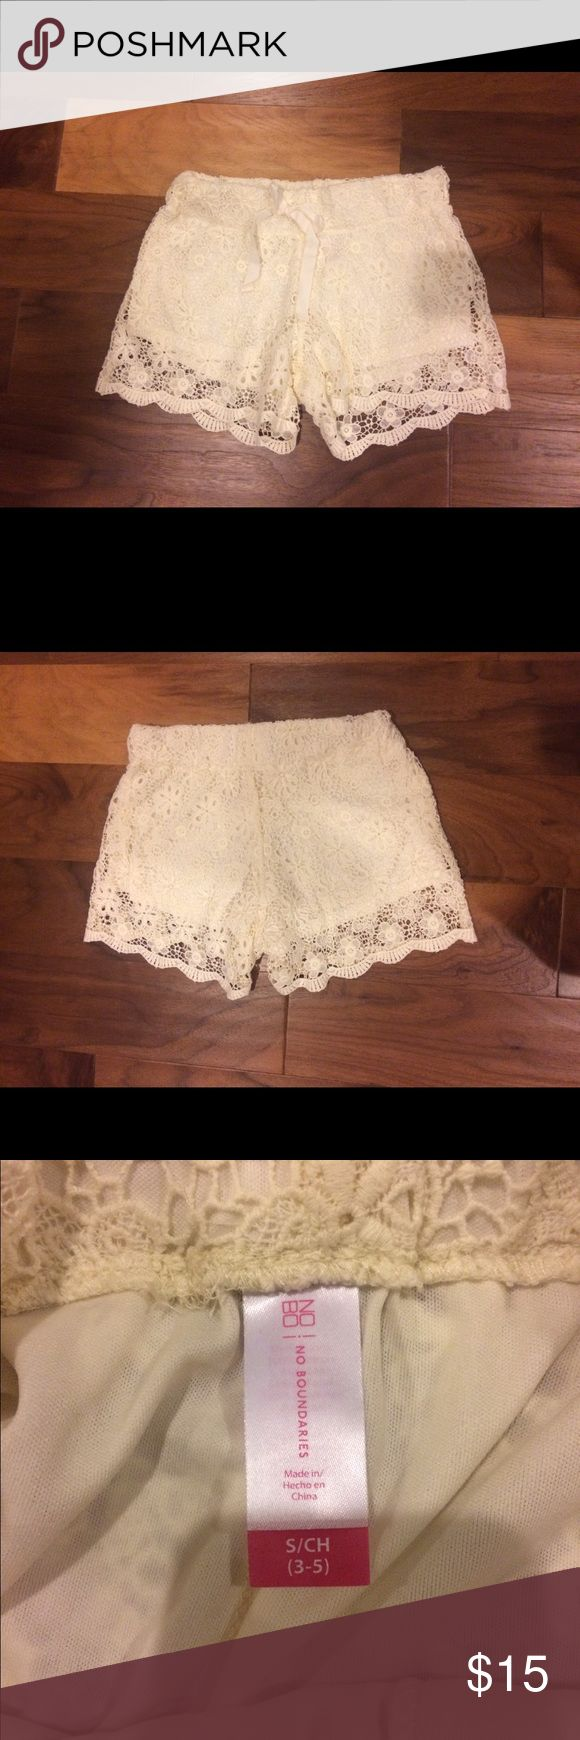 Cream Lace Shorts Size small or 3-5, fits more like size 3. Brand new without tags. No Boundaries Swim Coverups